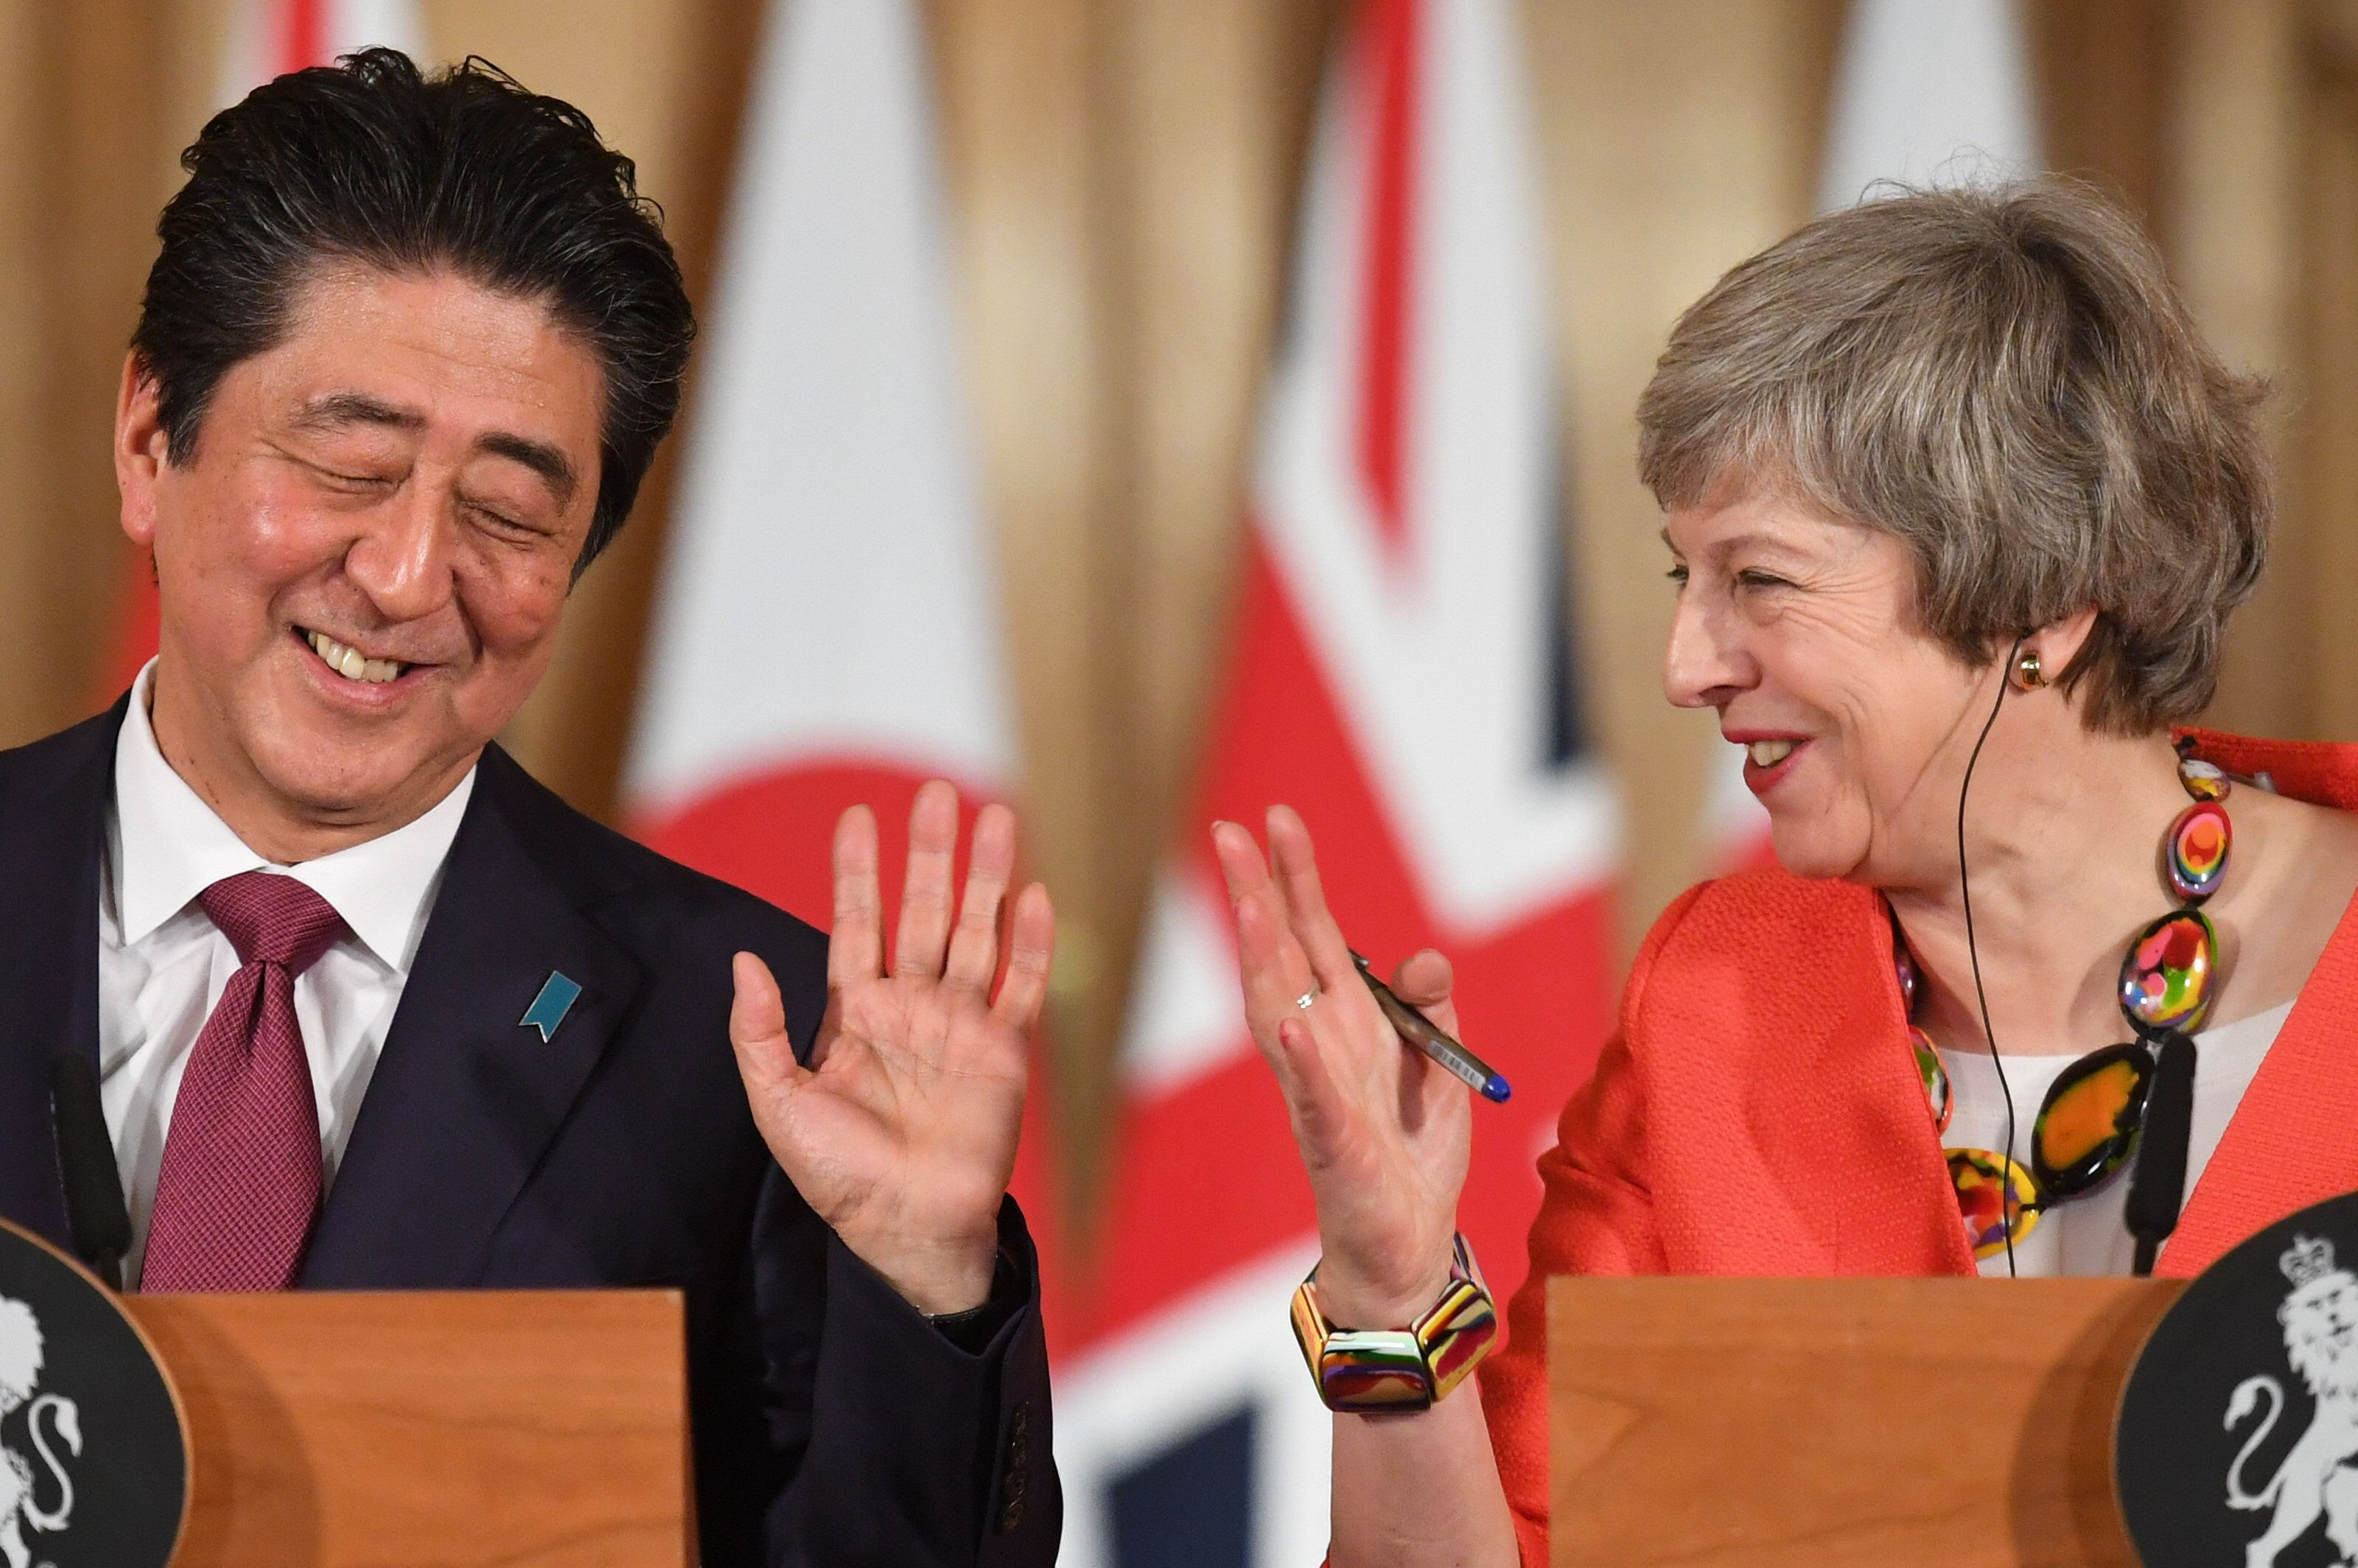 'Whole World' Wants To Avoid A No-Deal Brexit, Japanese PM